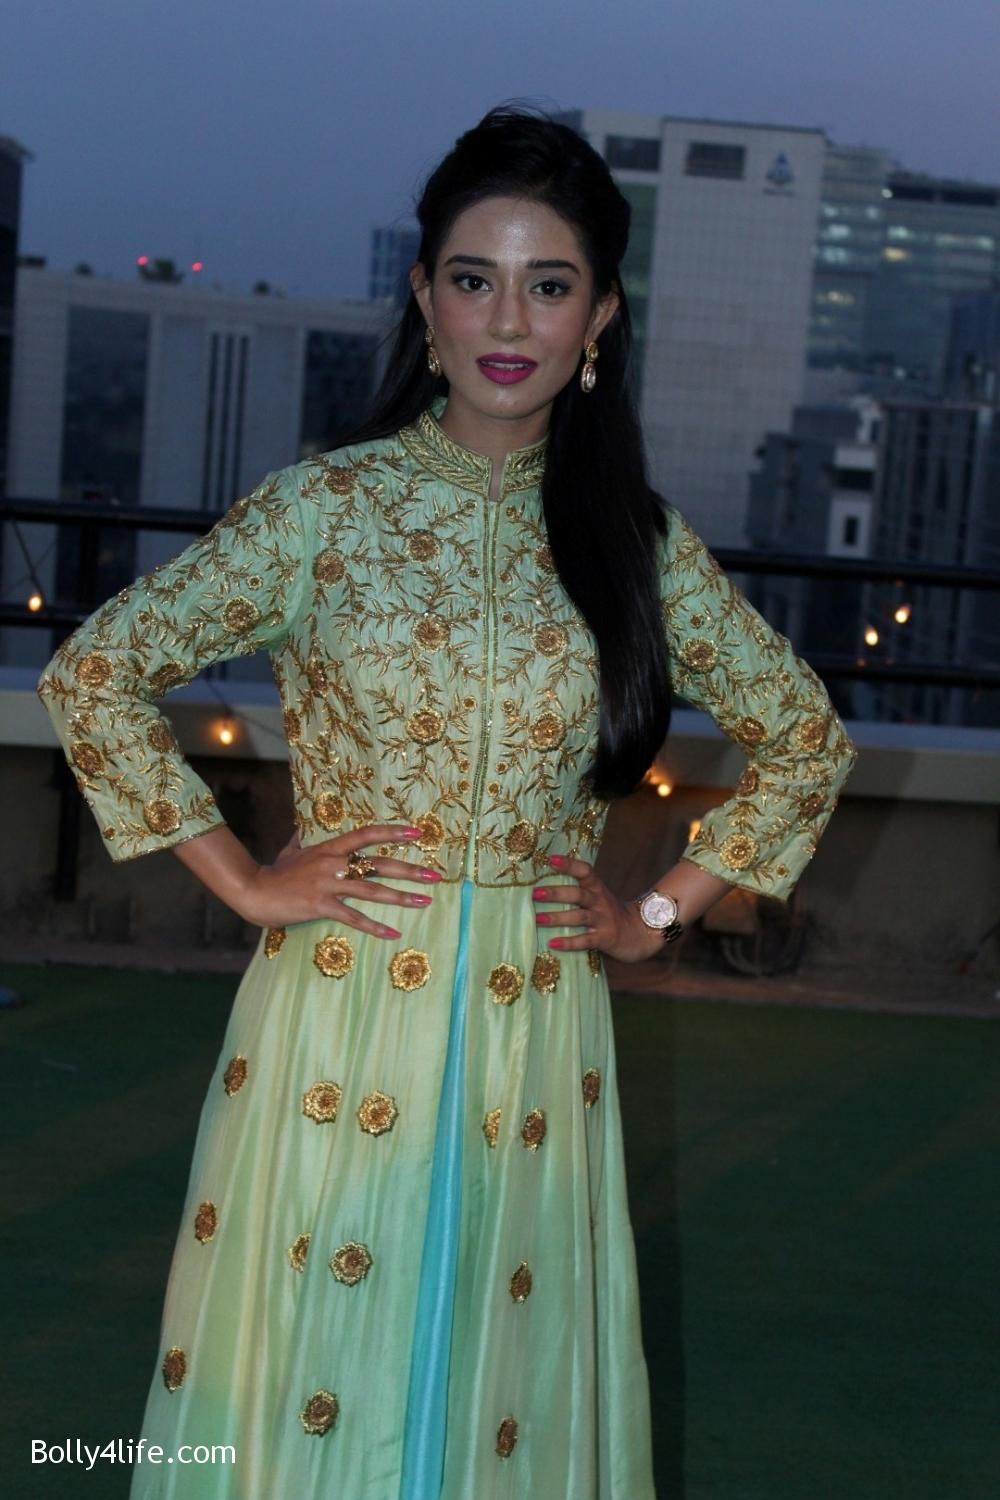 Amrita-Rao-during-the-annual-event-of-Khel-Khel-Mein-1.jpg